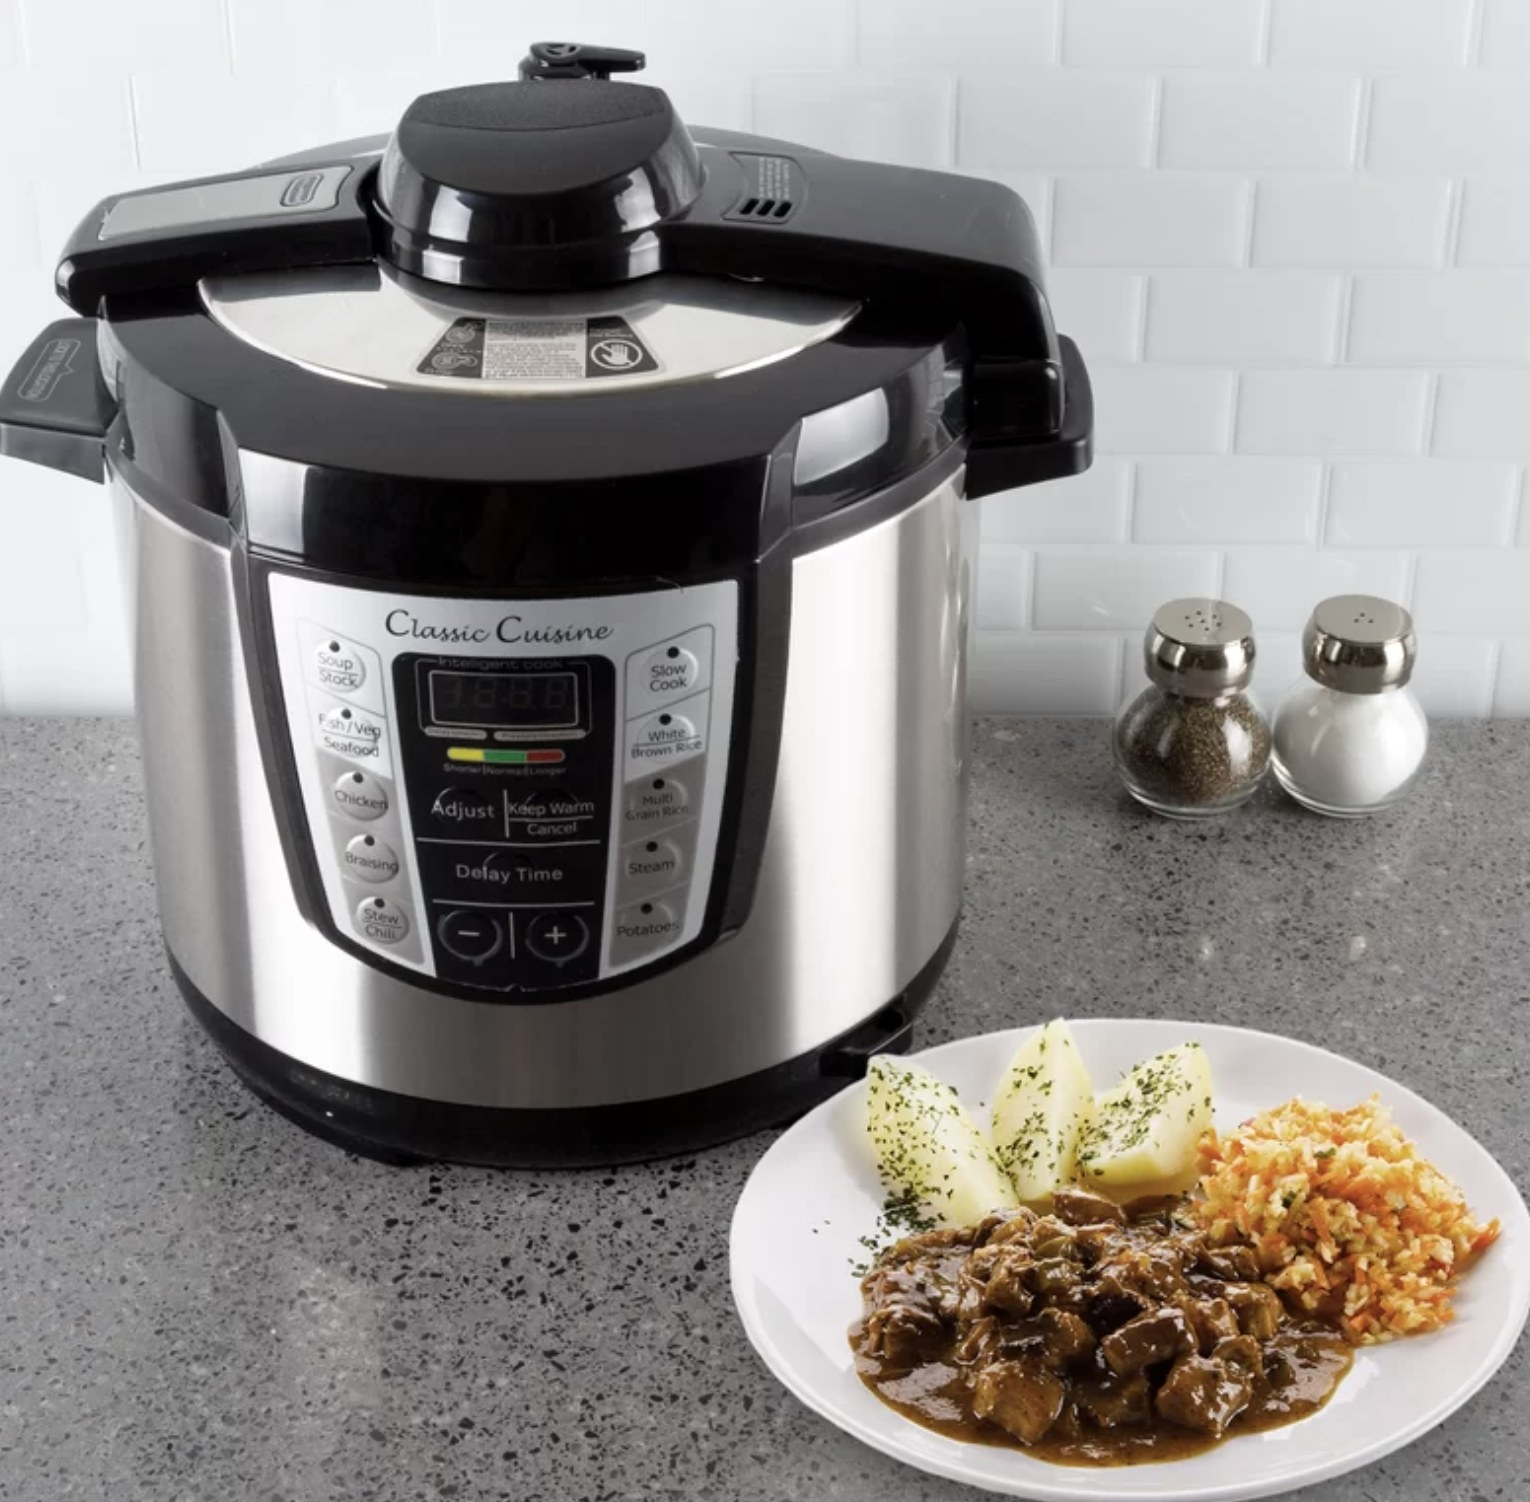 The multi-cooker next to a plate of food